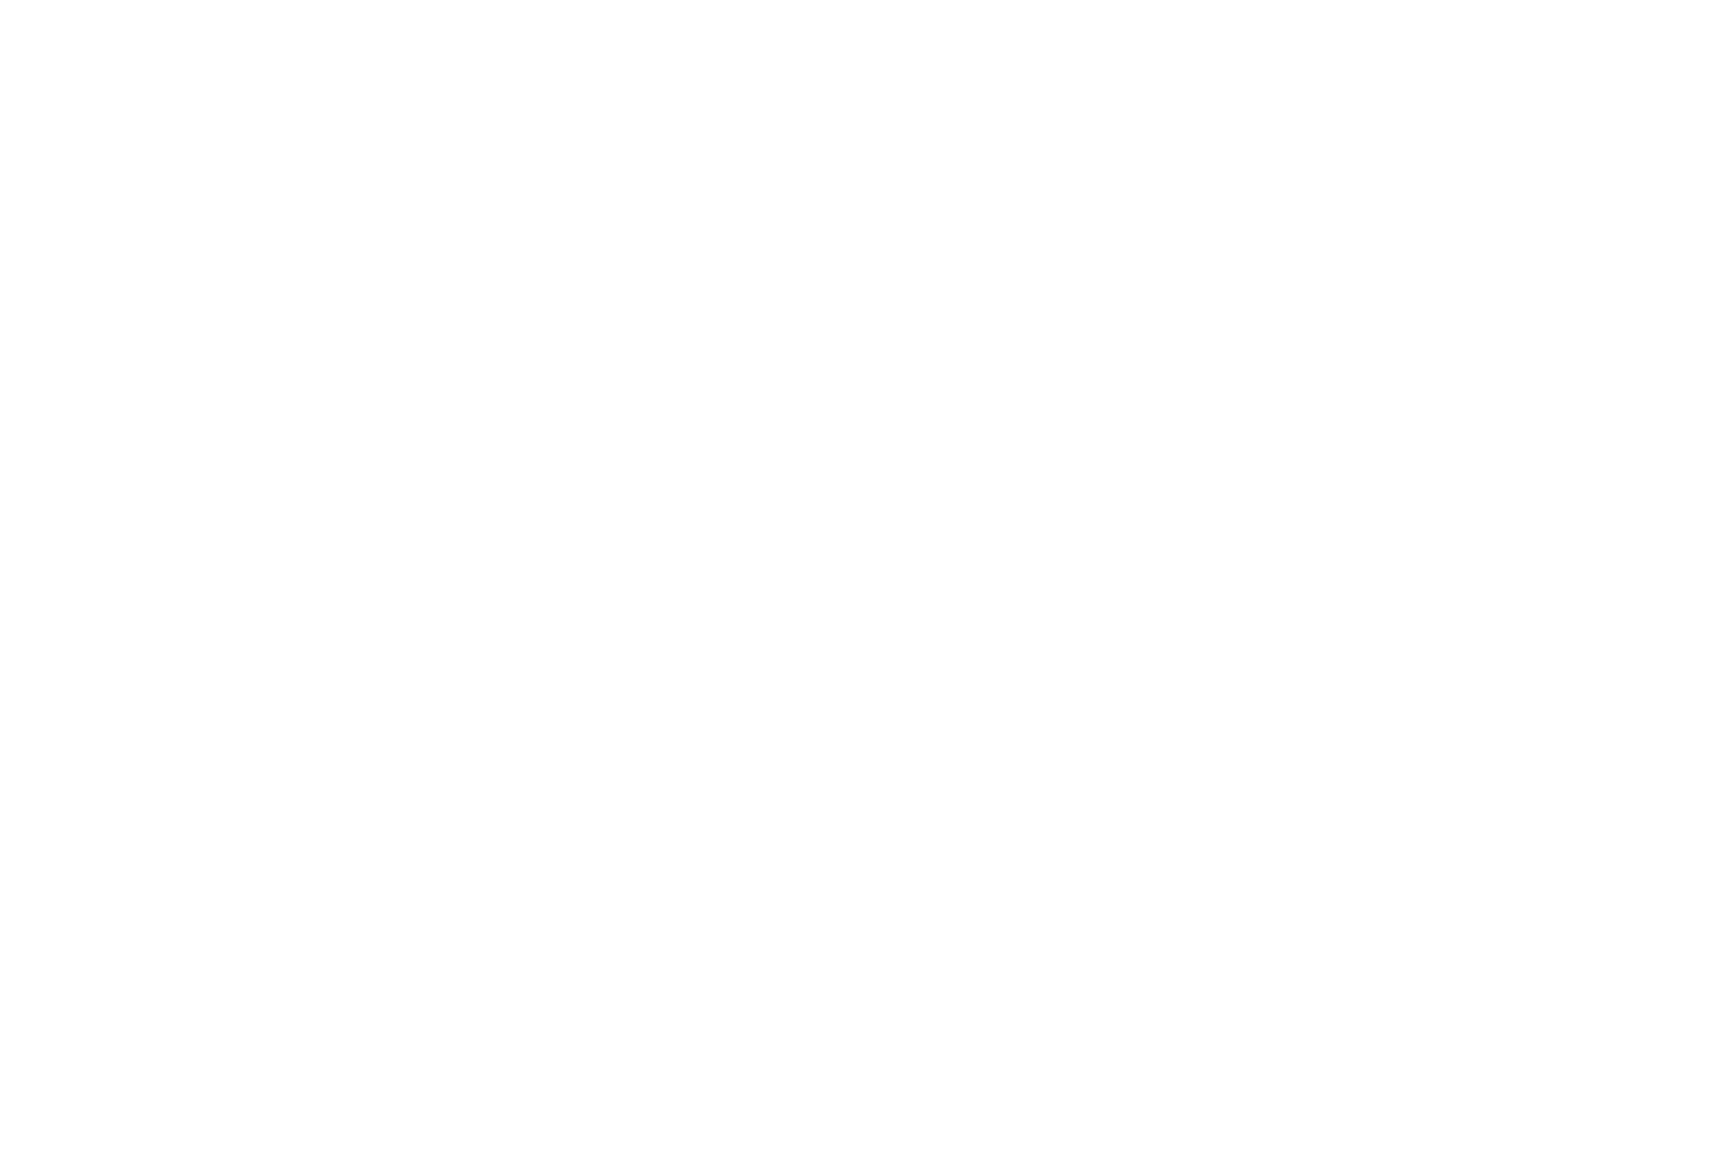 OFFICIAL SELECTION - BLACK EXCELLENCE FILM FESTIVAL - 2018.png